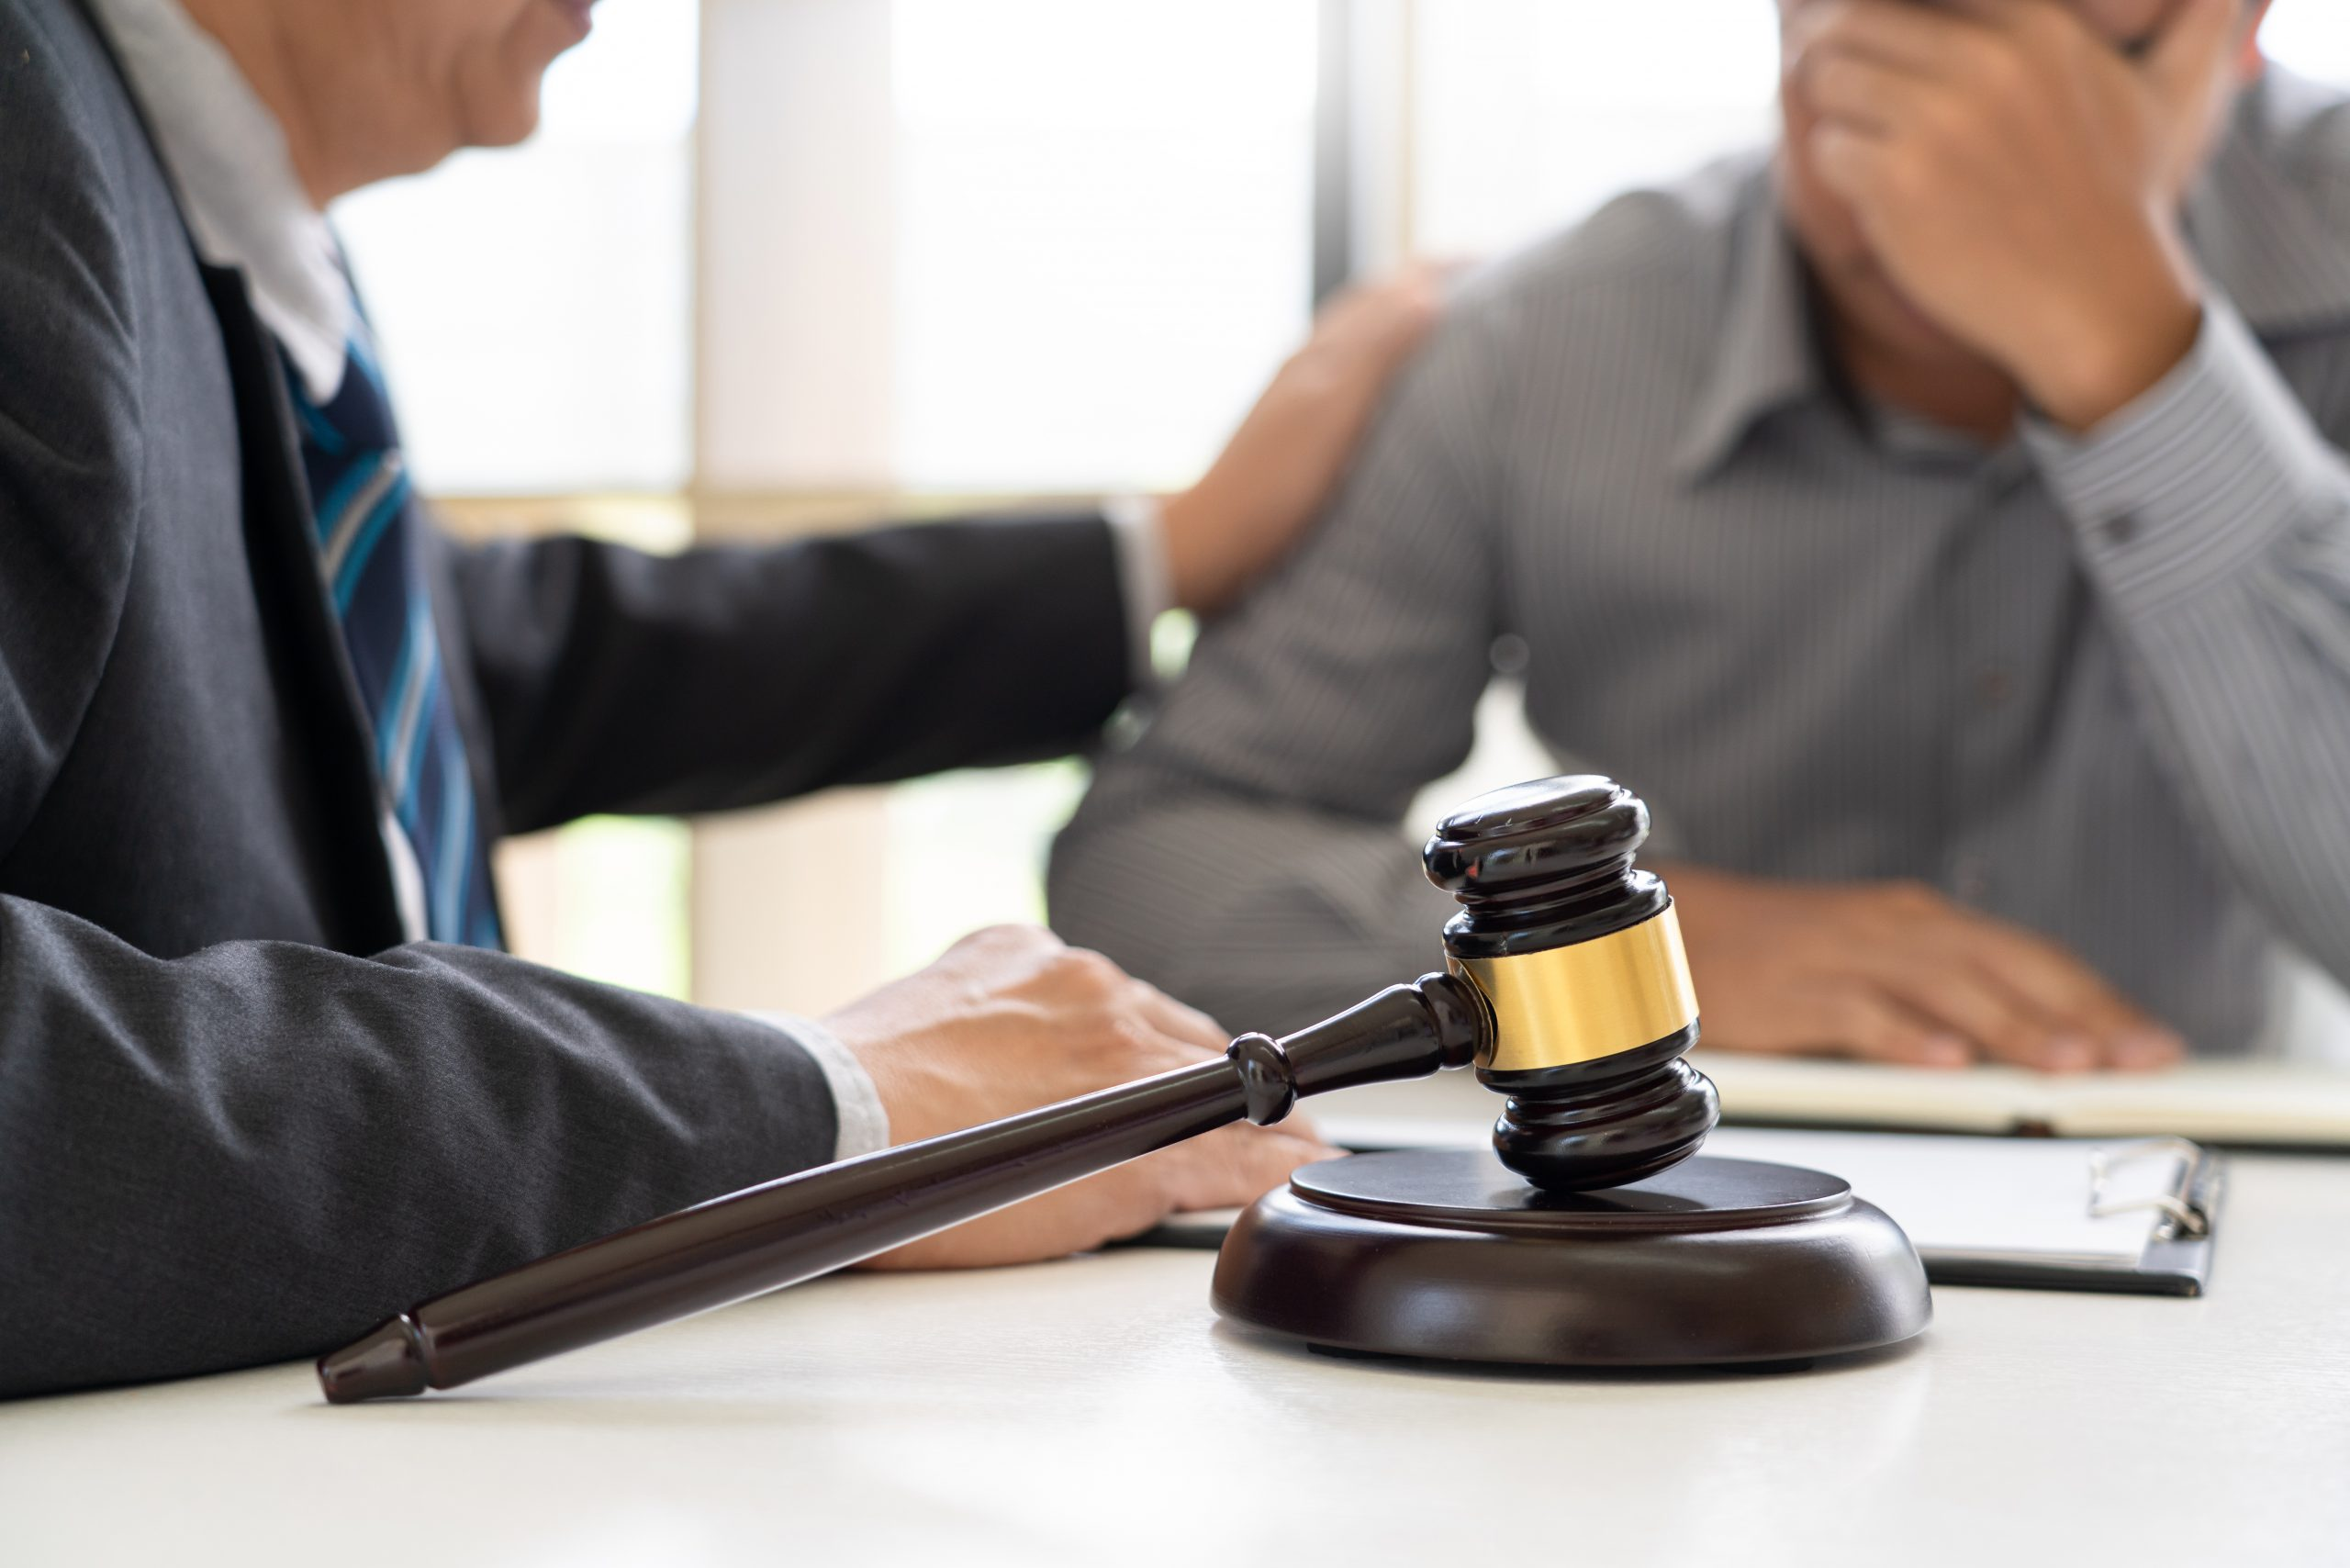 How Do I Find Good Trust Litigation Attorneys Near Me?